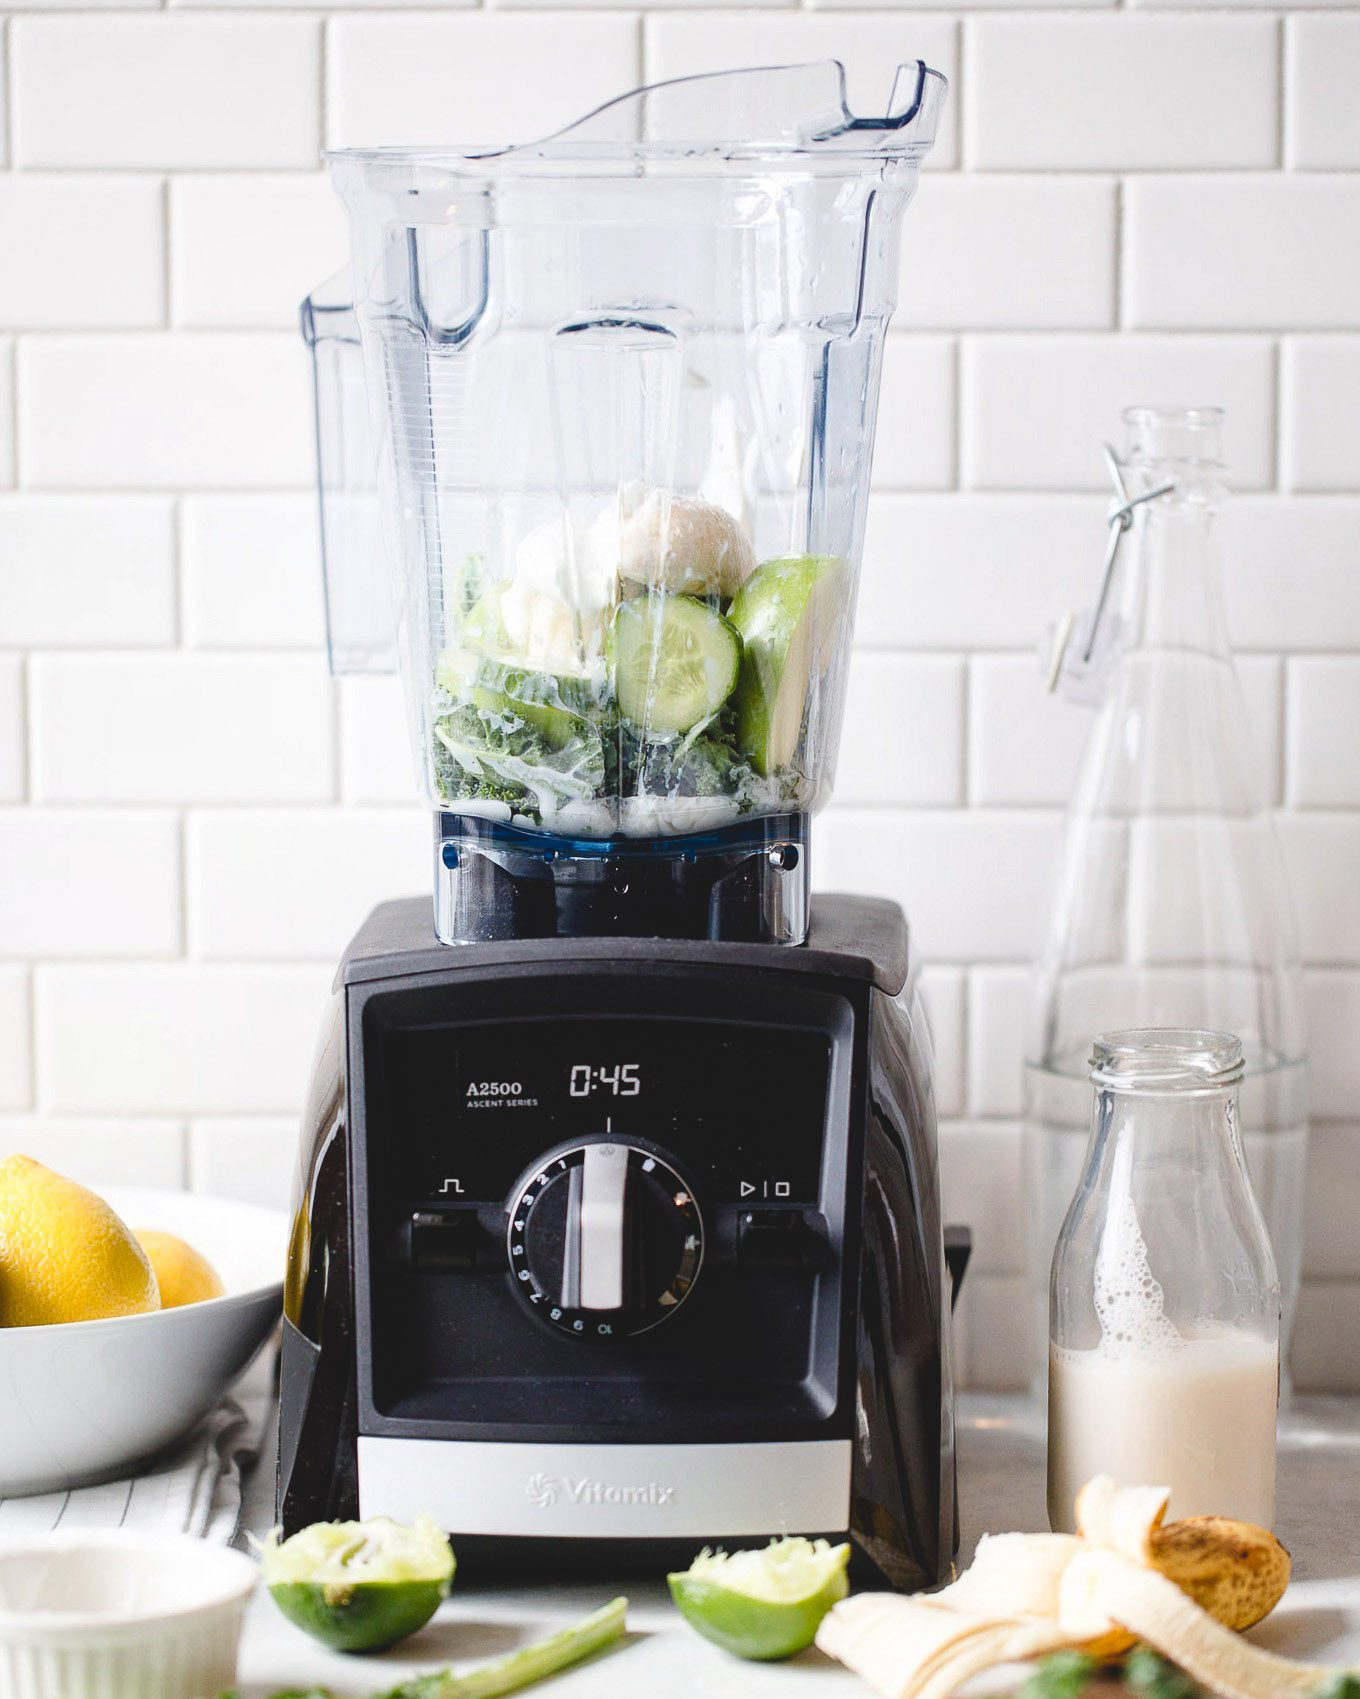 Making a Green Smoothie in the Vitamix